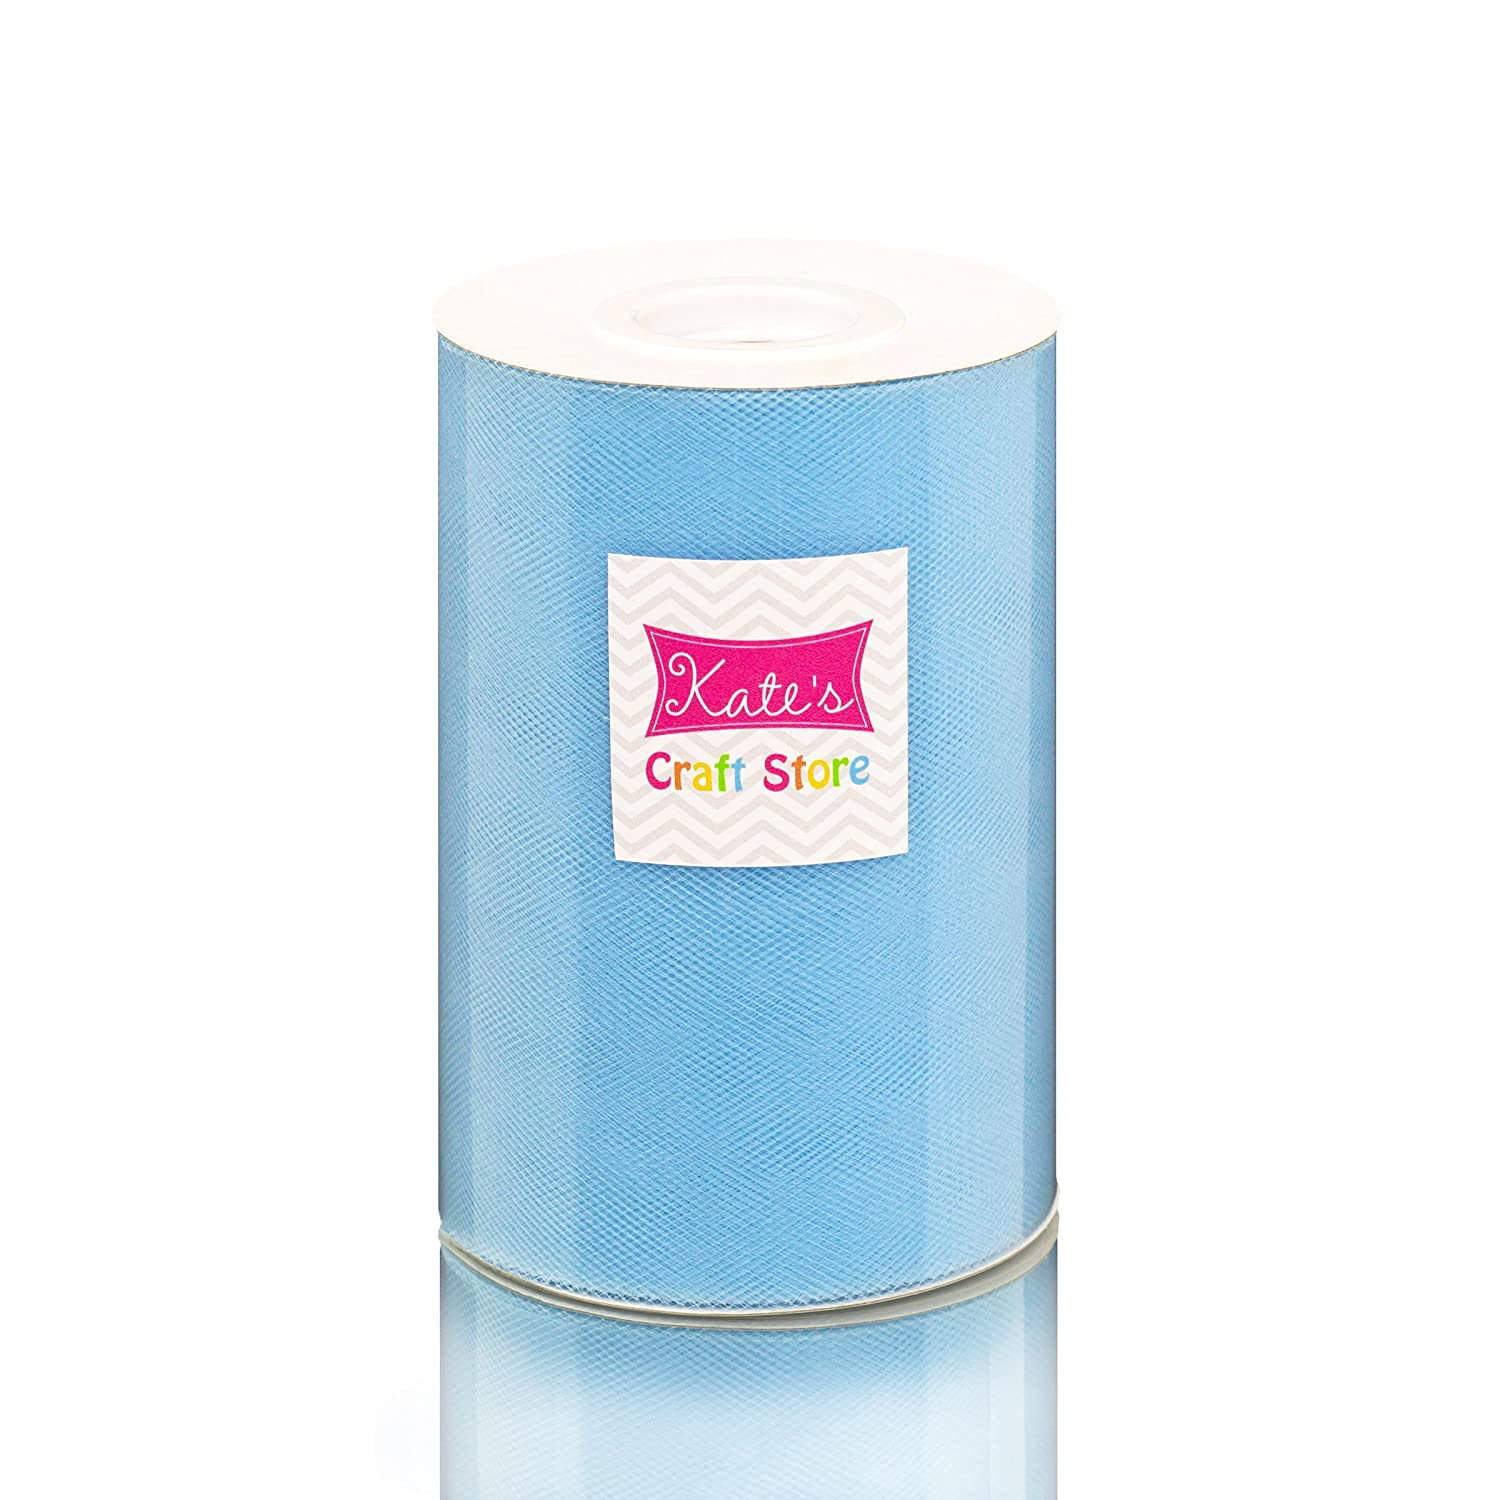 Kate's Craft Store. LIGHT BLUE Tulle 6in x 300ft (100 yards) roll. by Kate's Craft Store   B00YBE9JUI